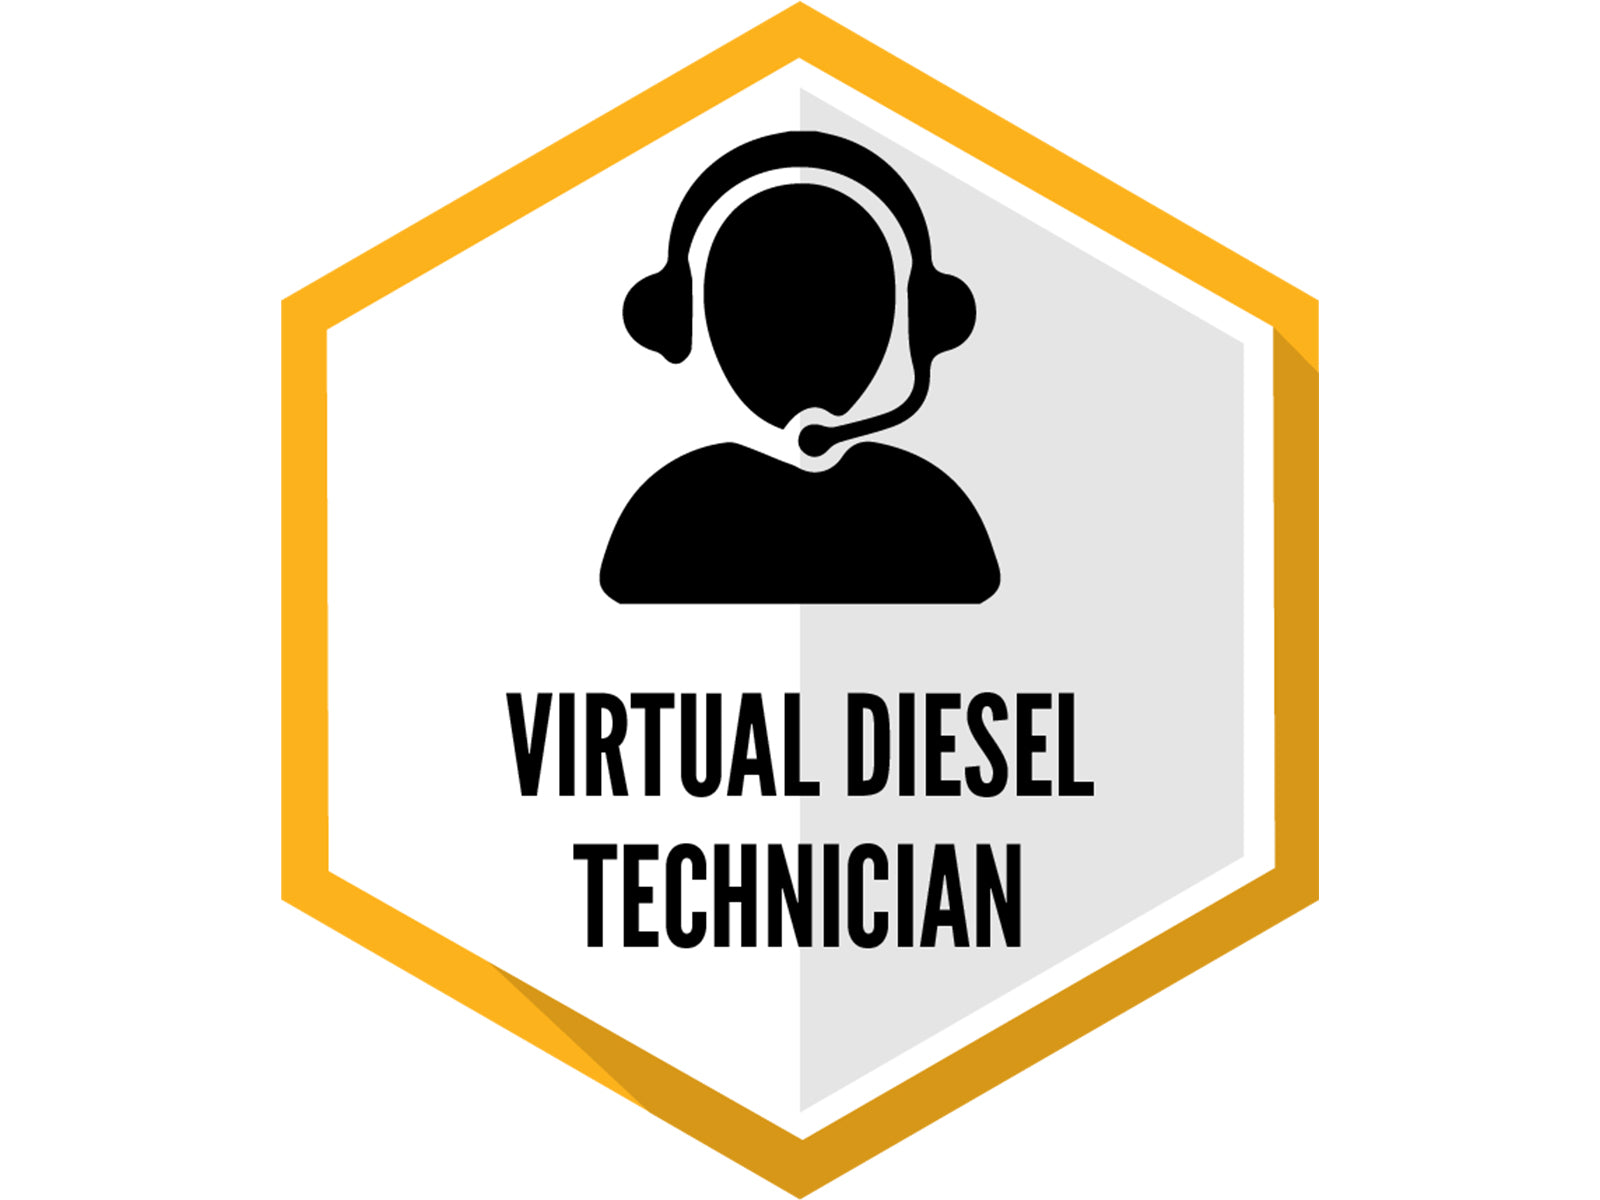 Virtual Diesel Technician Service and Software